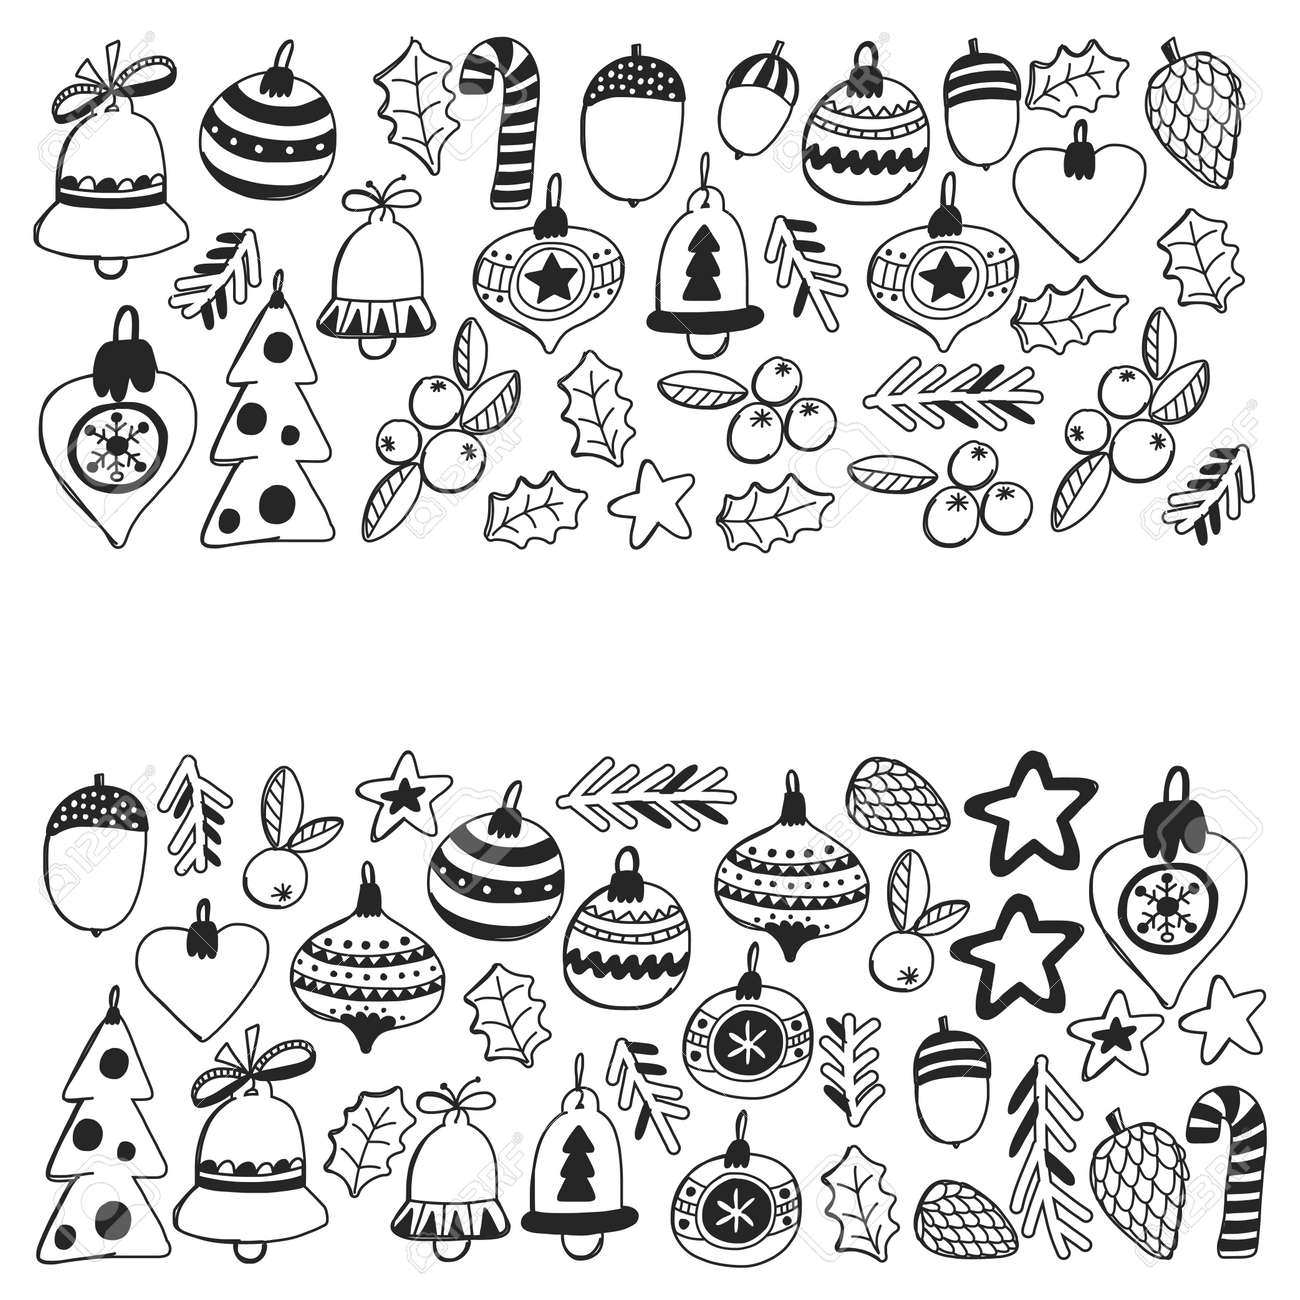 Christmas Patterns For Coloring Book Frame Wth Christmas Elements